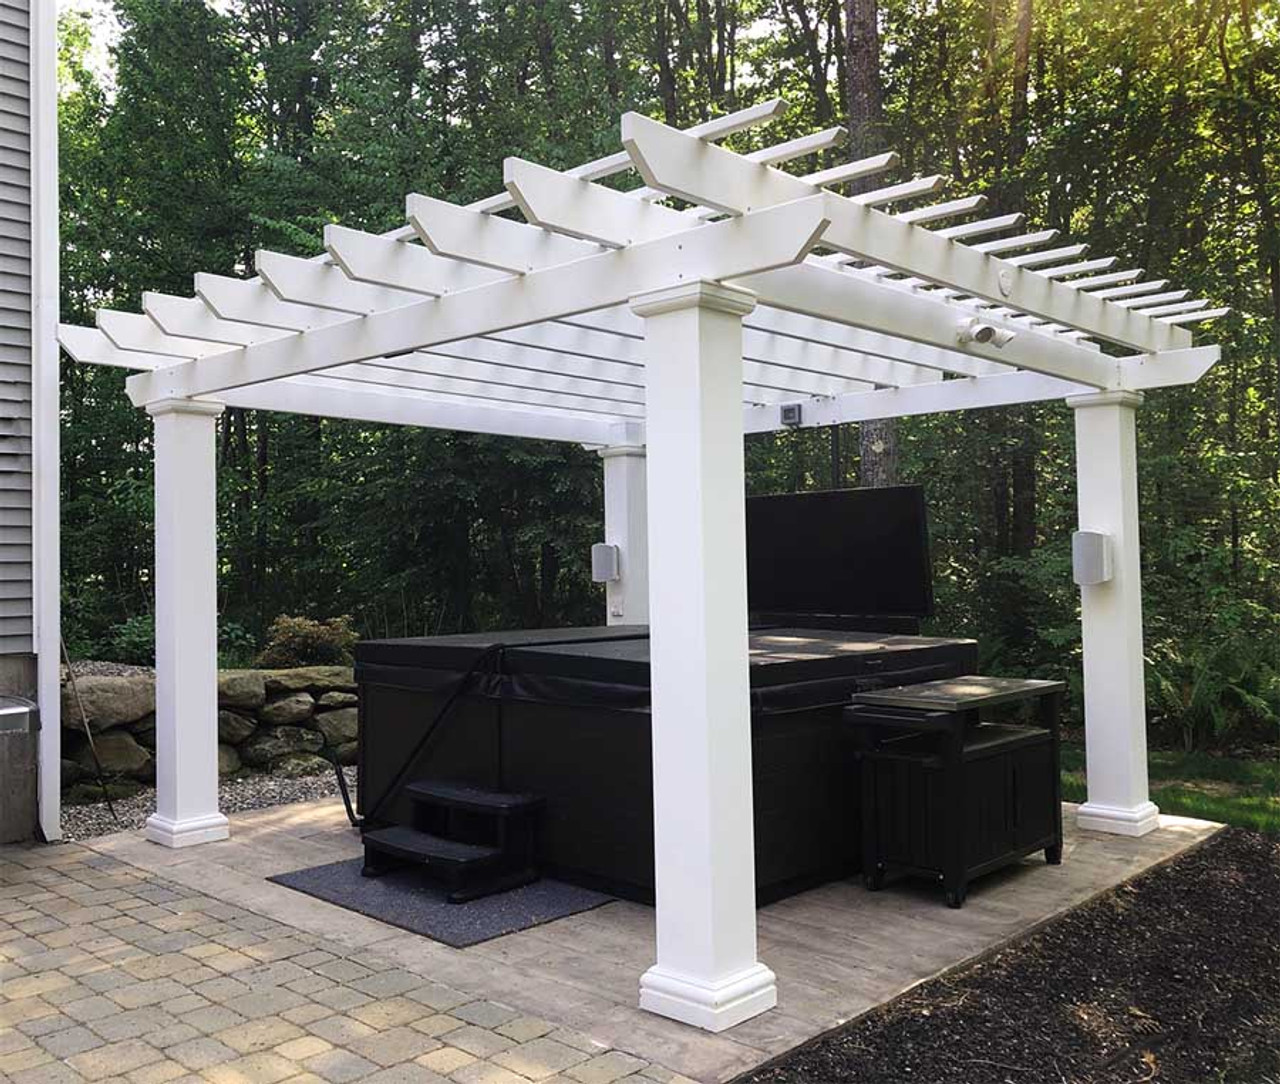 """Classic and Clean Avondale -The Avondale Fiberglass pergola kit ships in one week, features Napa Style rafter tails, and 10"""" square posts 8ft tall. Available in Standard White Color. This is a fiberglass-resin composite material warrantied for life. Available in 12x12, 14x14, and 16x16 sizes."""